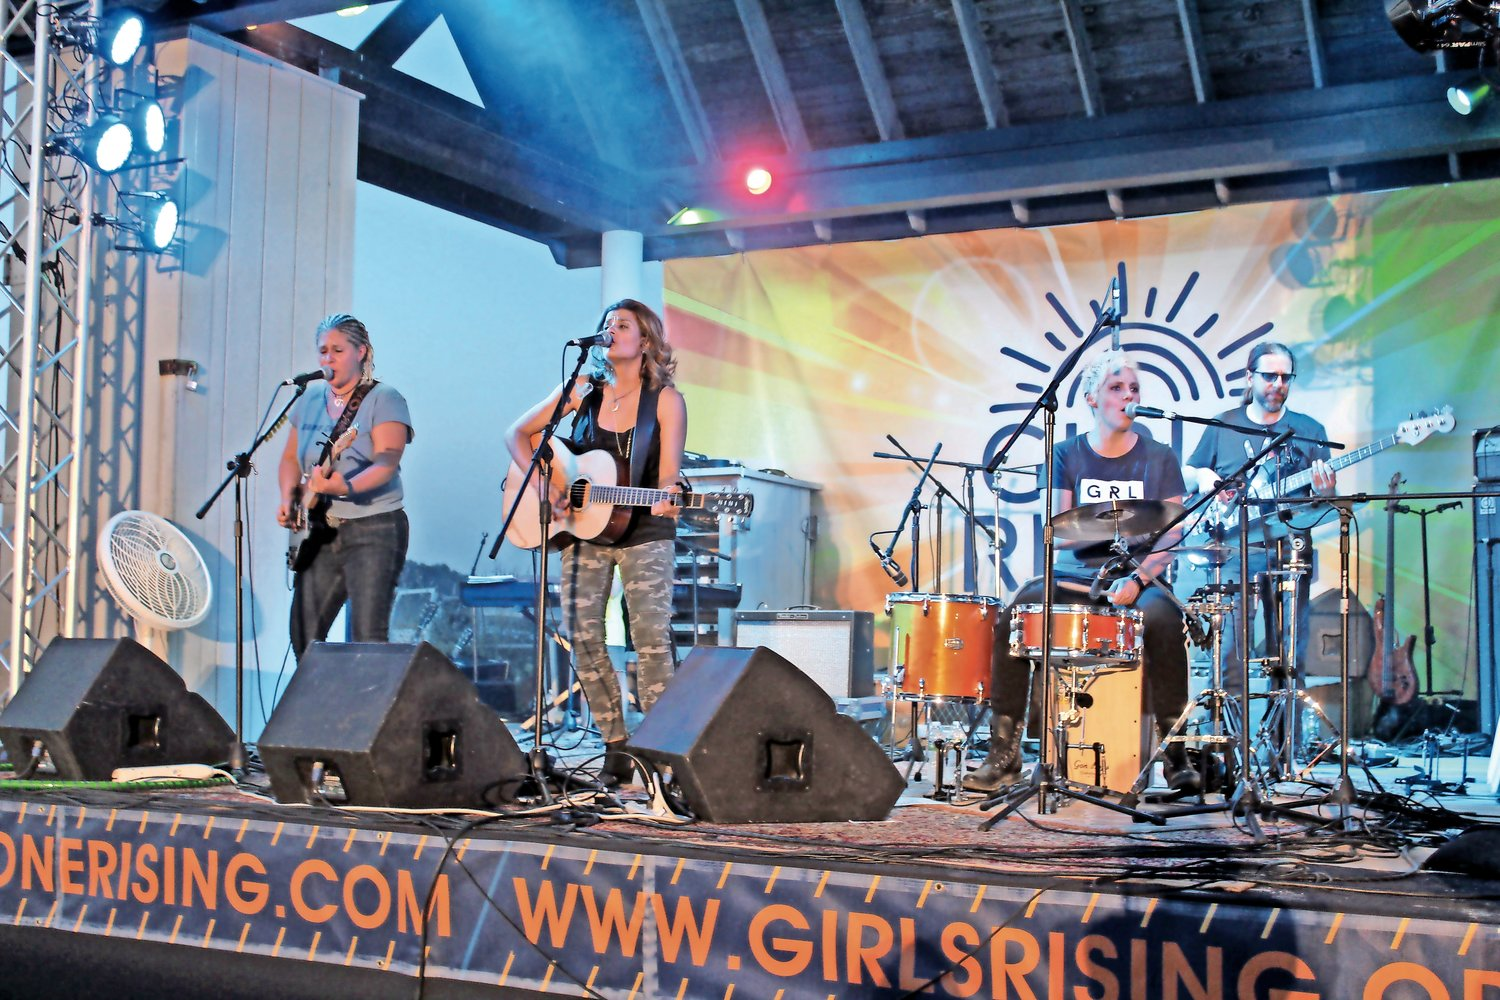 Antigone Rising closed out its music festival last summer at Sea Cliff Beach. The event will take place this summer at Morgan Memorial Park.